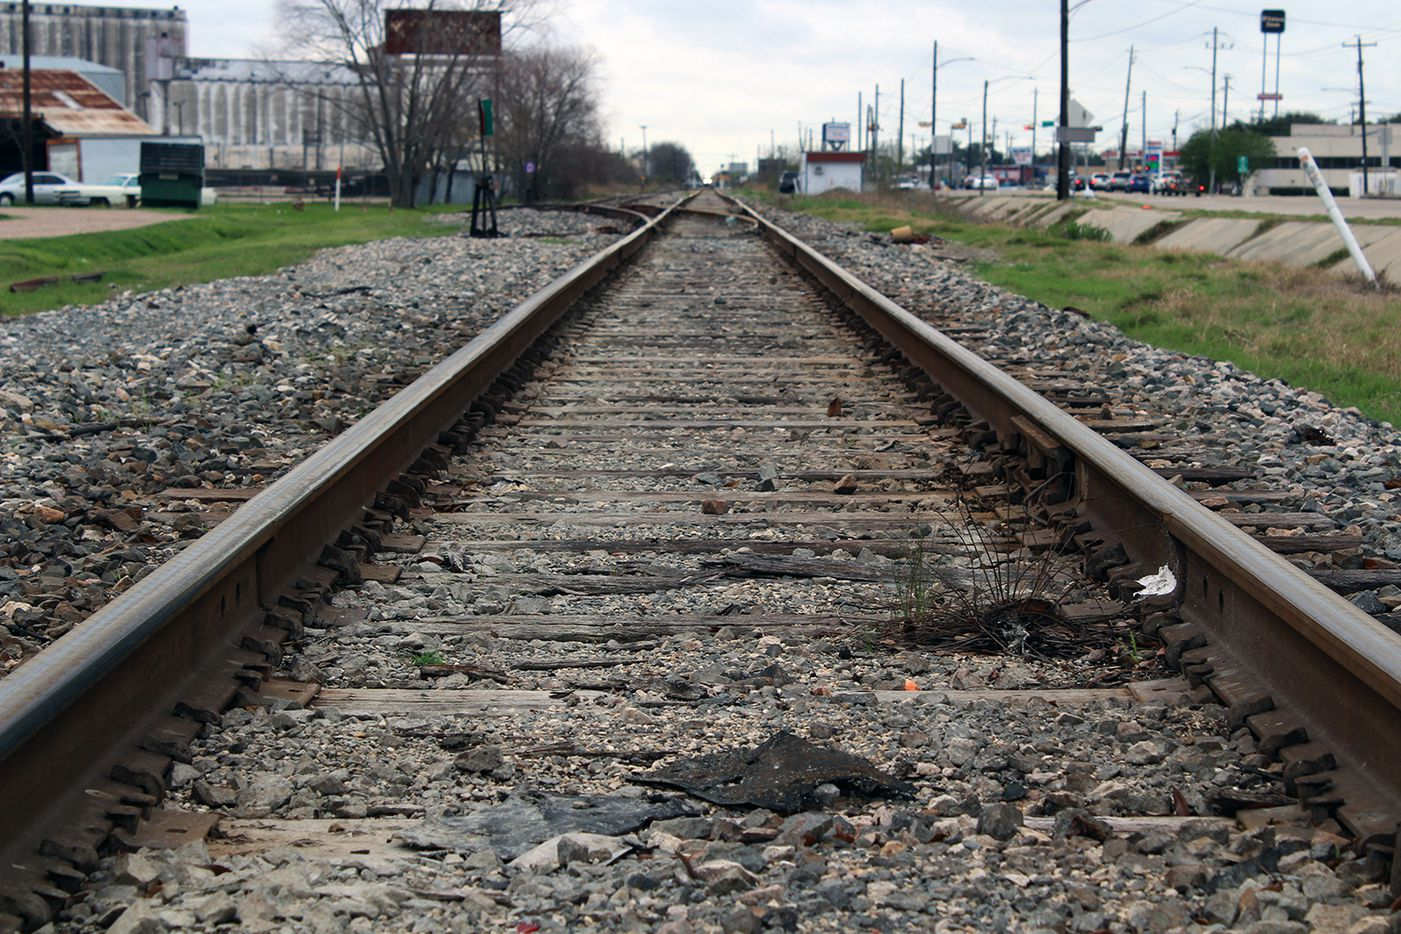 As it approaches its potential Houston station near Interstates 10 and 610, a planned bullet train connecting the city to Dallas could run on Hempstead Road parallel to this existing rail line near Northwest Mall.